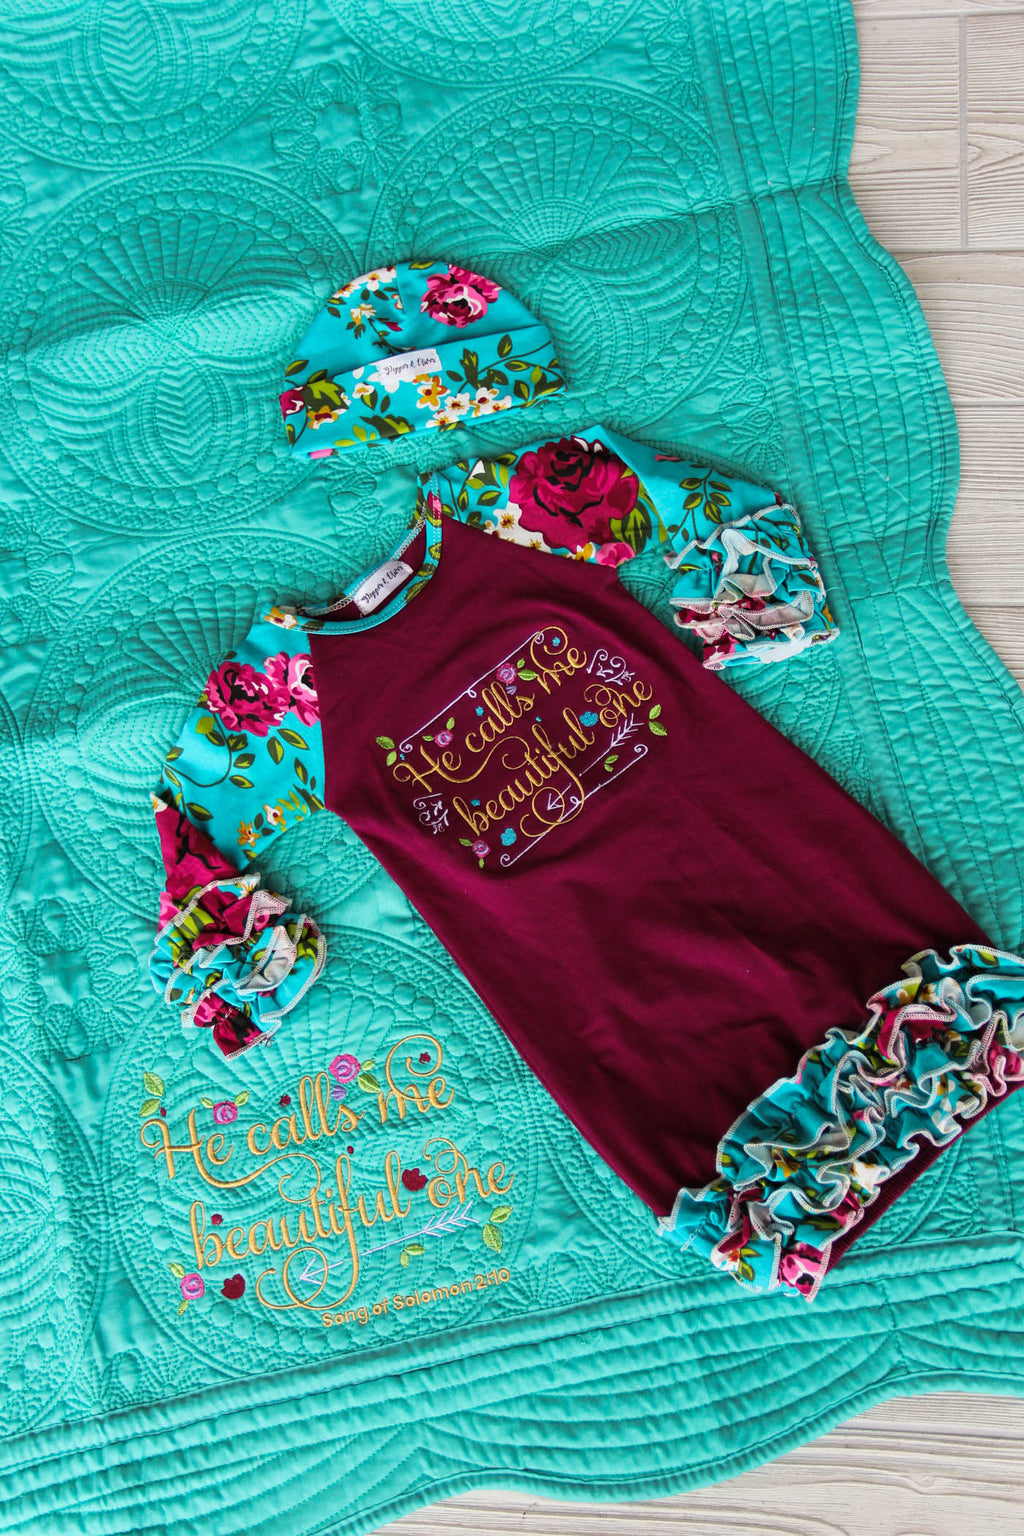 Song of Solomon Newborn Gown & Quilt